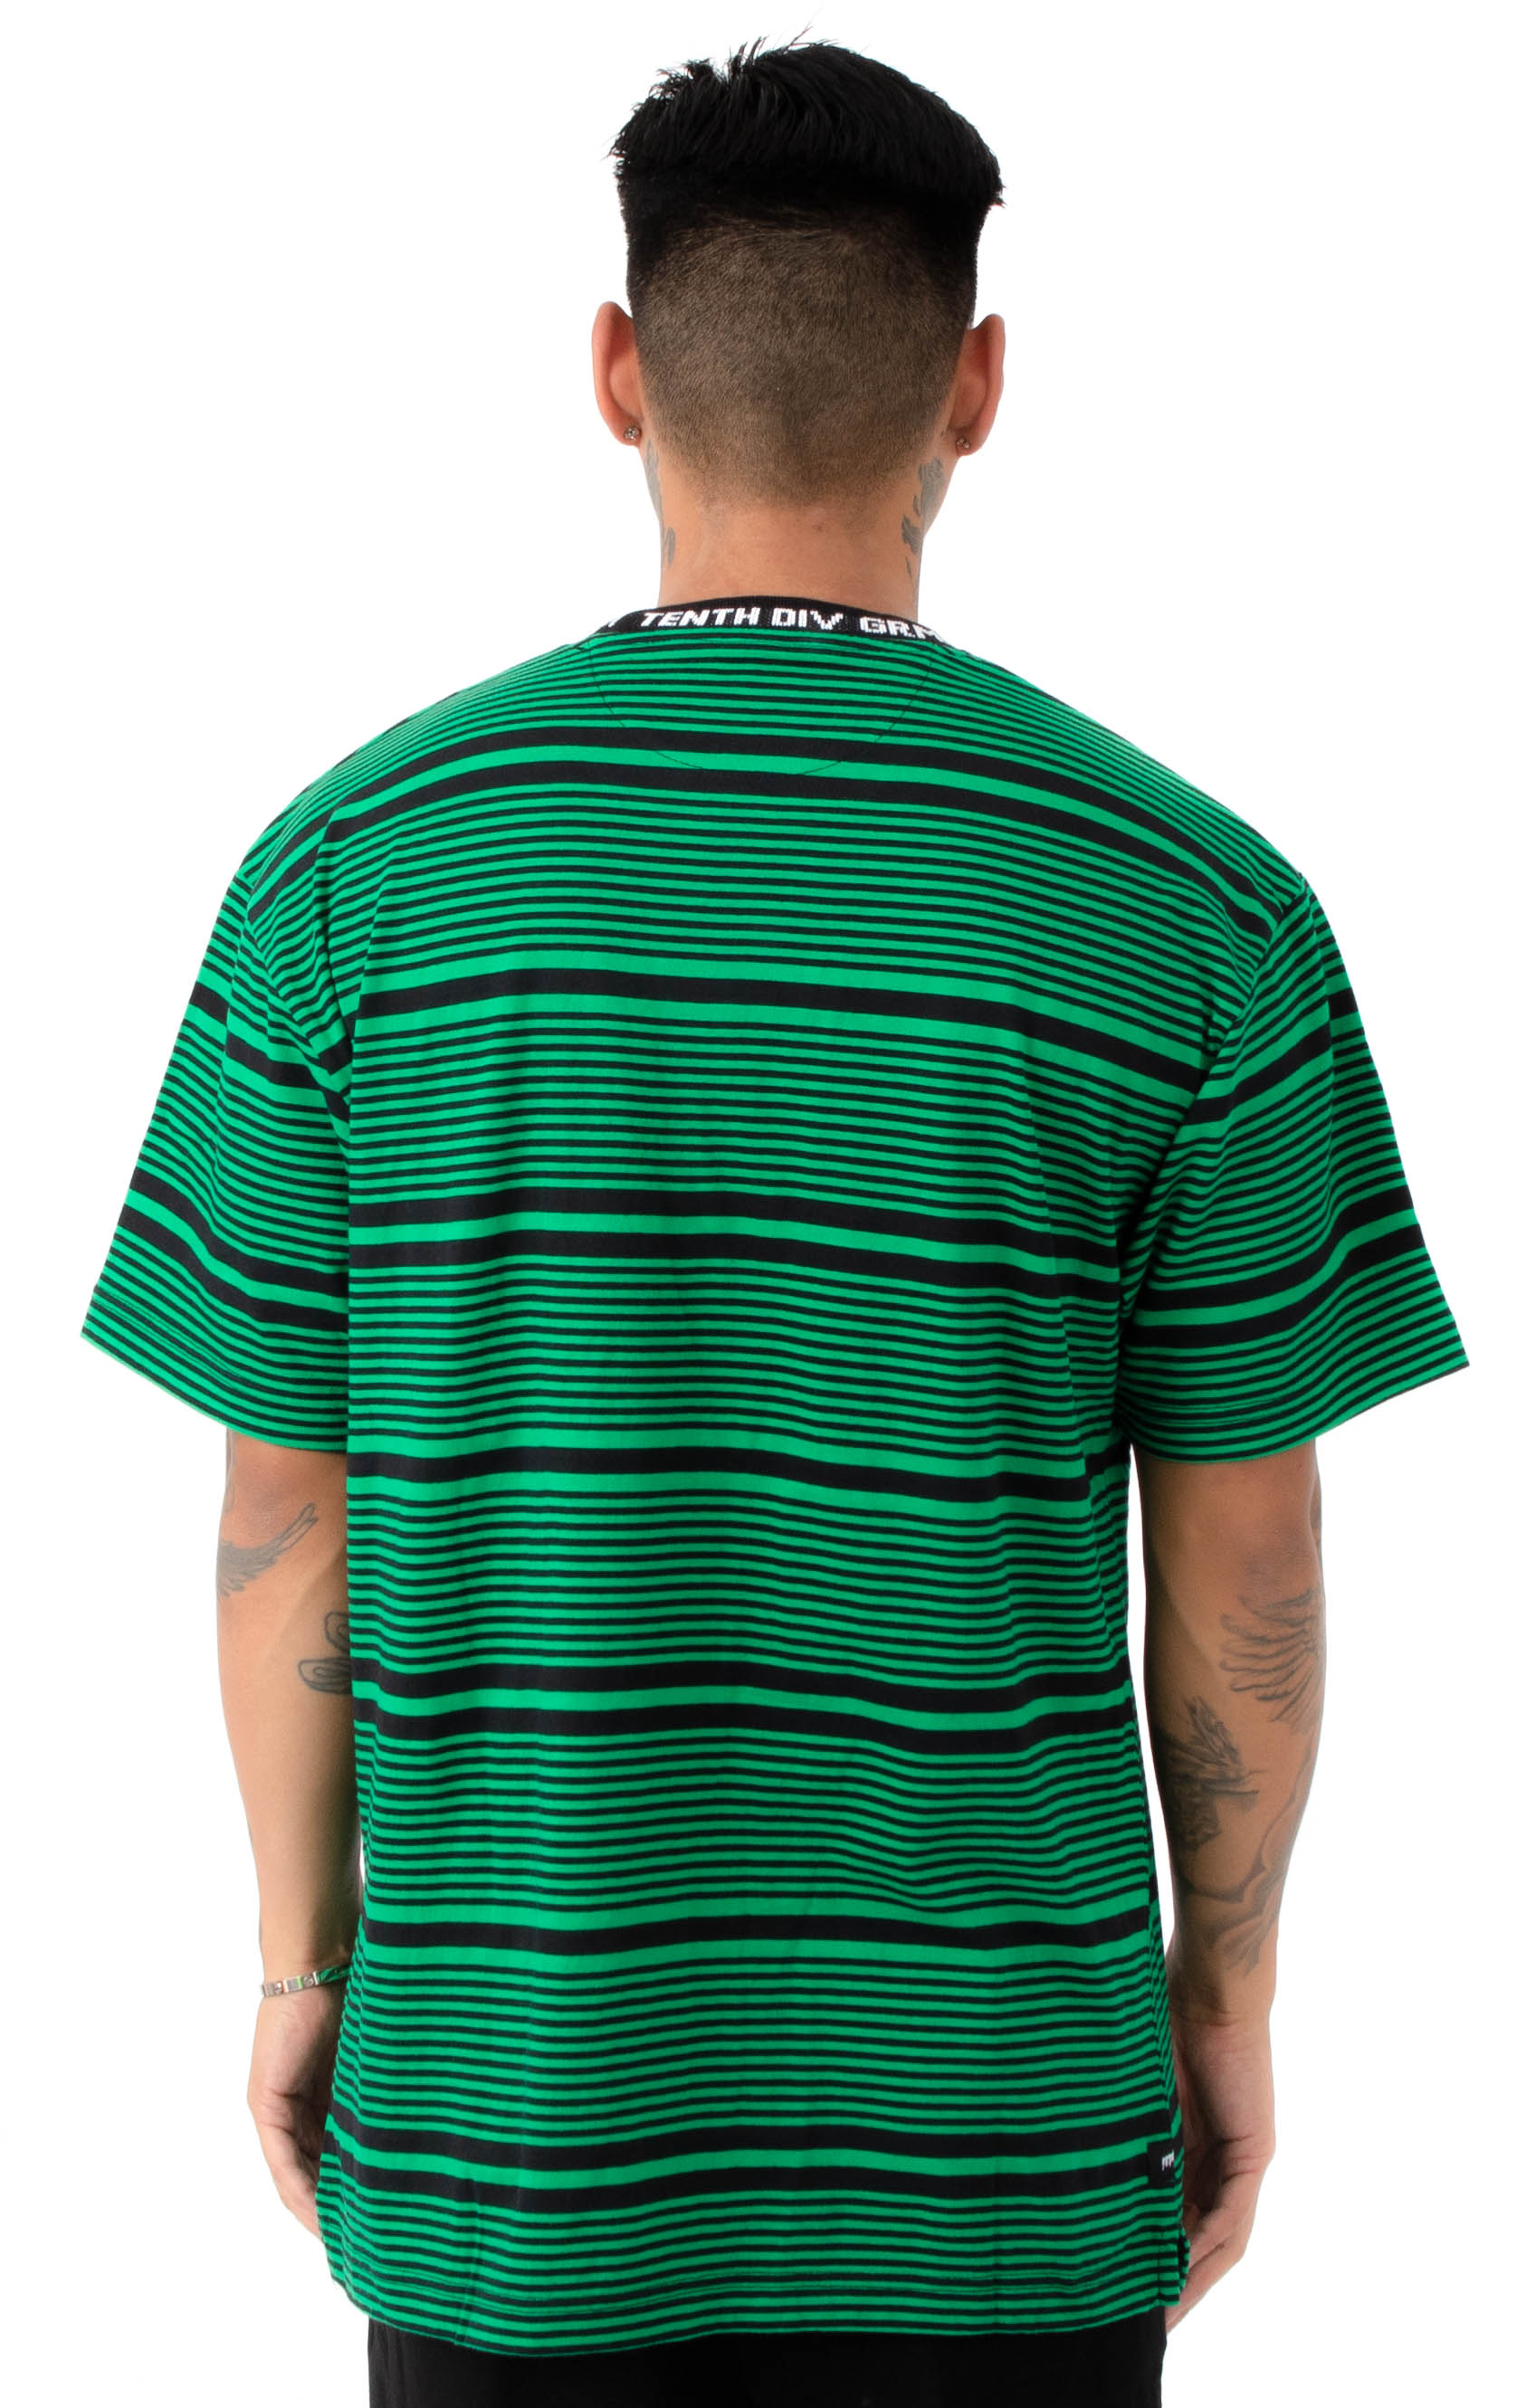 Foreigner Y/D Striped T-Shirt - Green 3